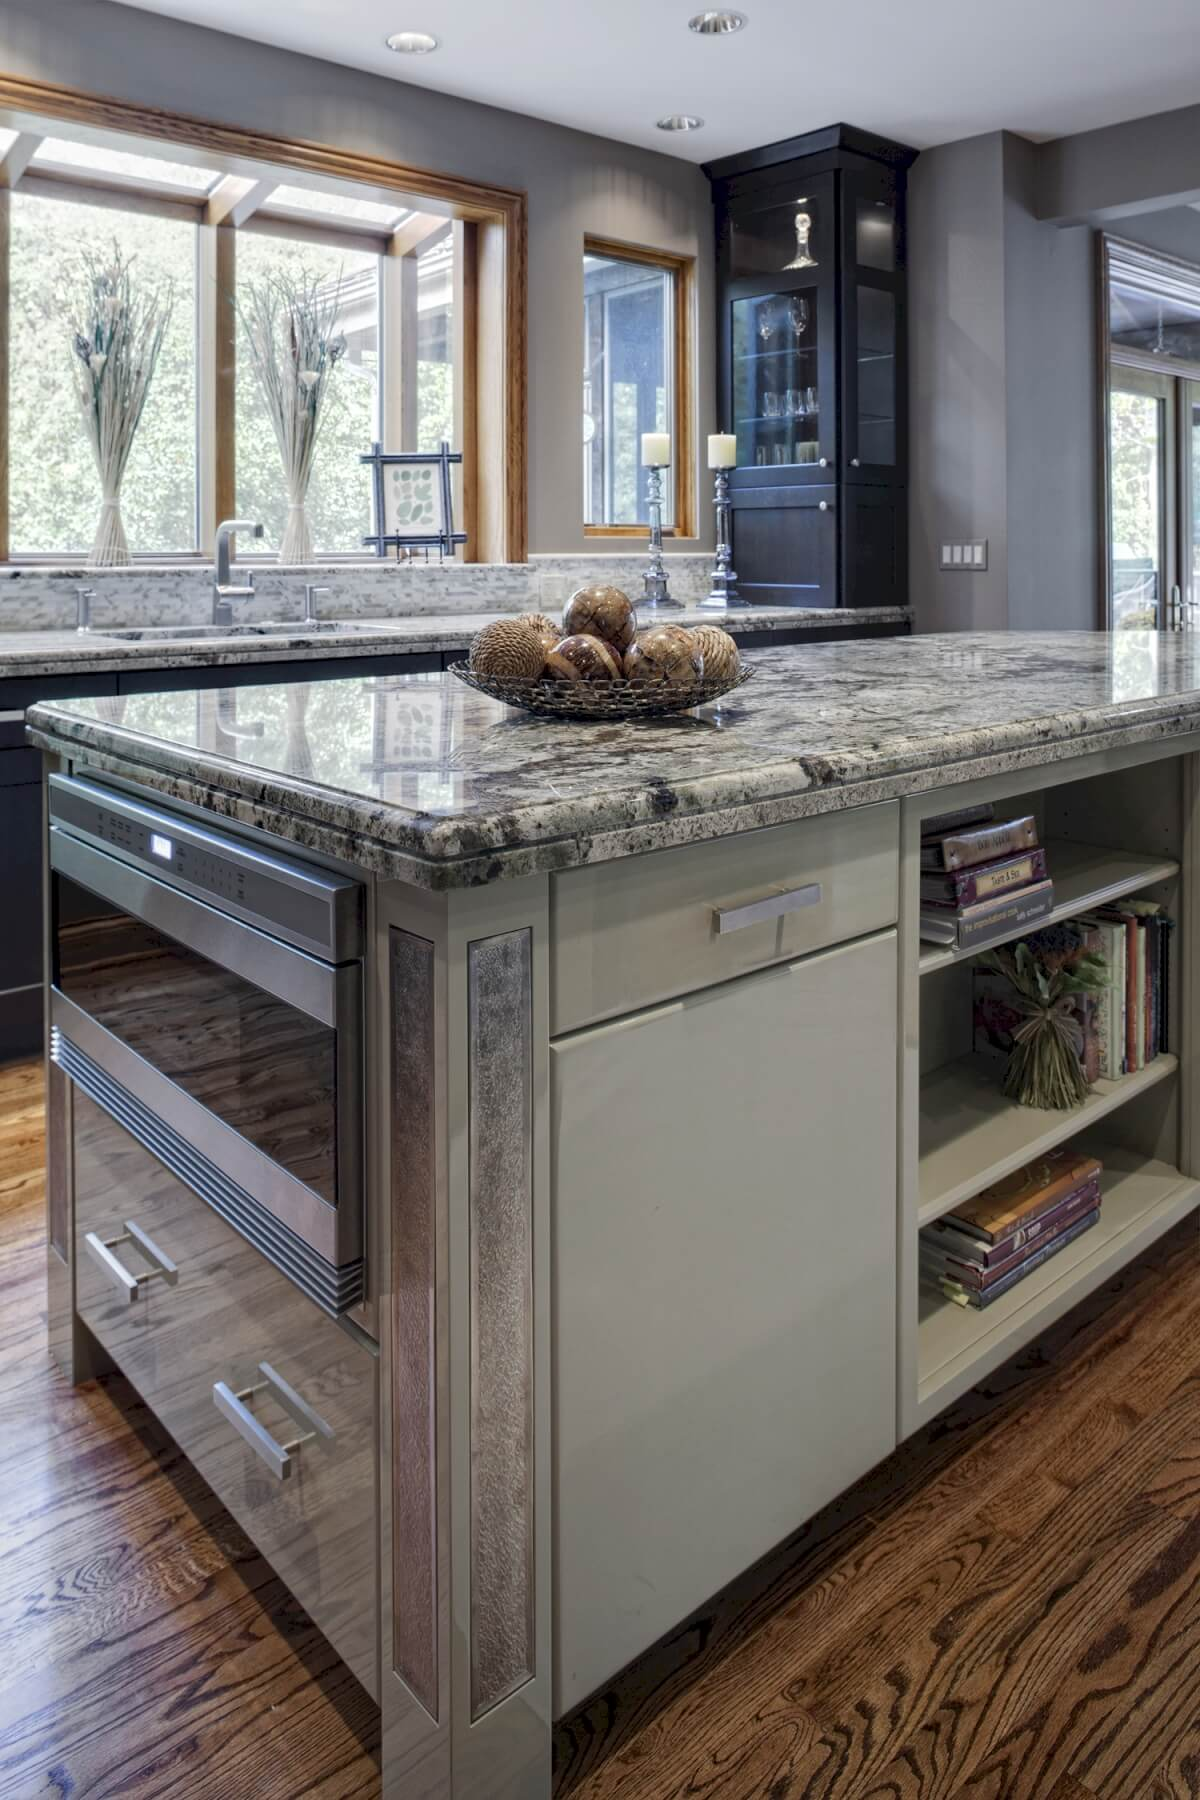 The island features pewter accent strips on the corners, over its high-gloss soft green finish.